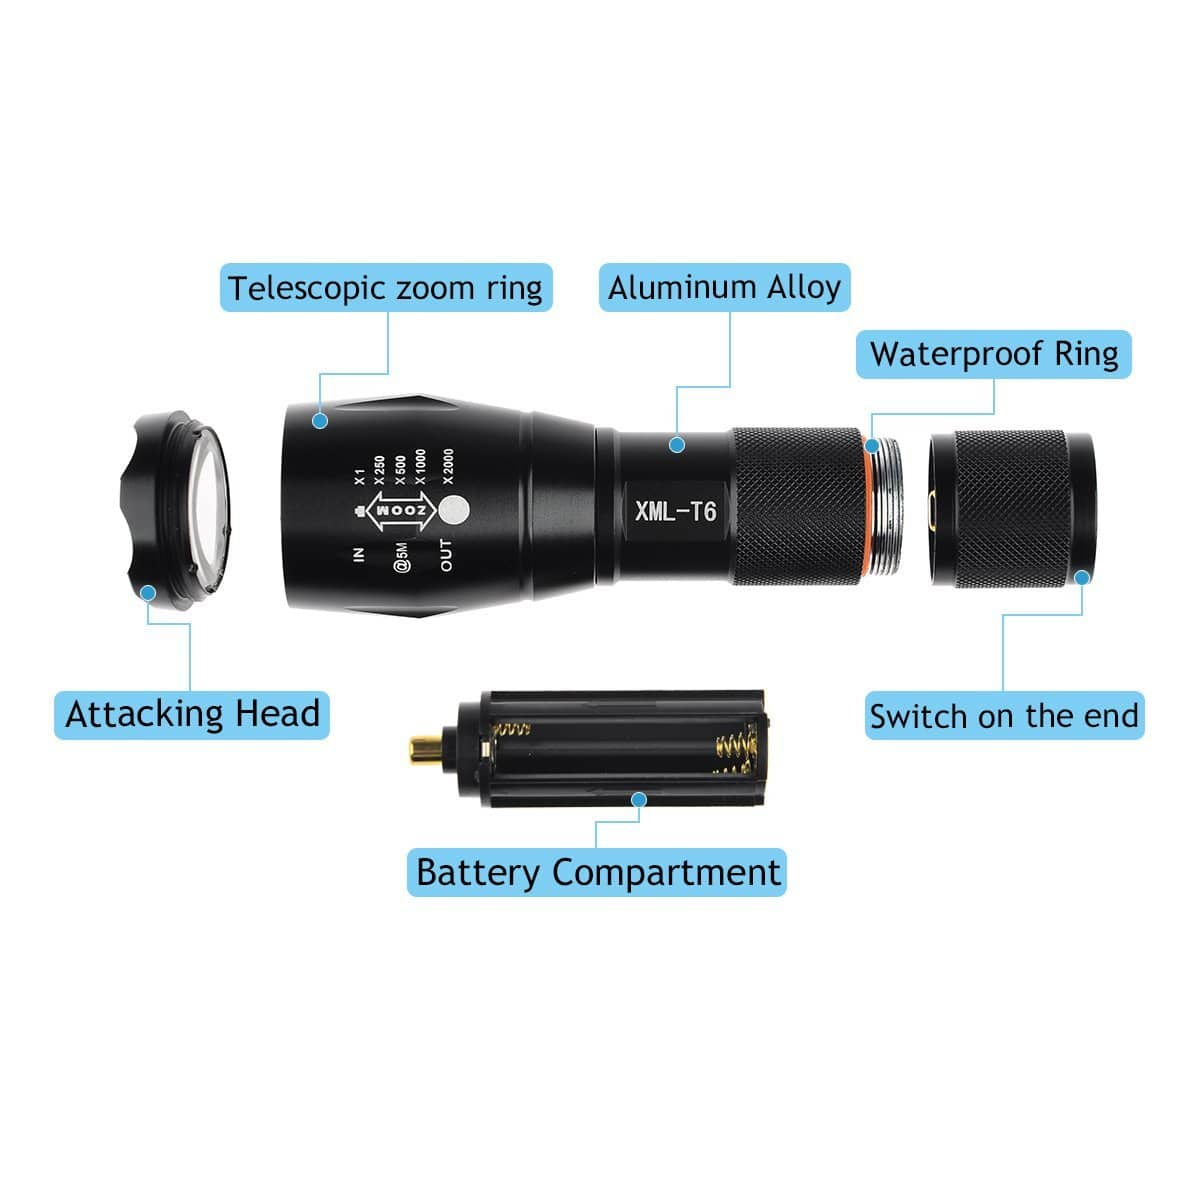 FLASHLIGHT cree led zoomable $4 OFF COUPON CODE (40% off) FREE SHIPPING (prime or fsss) @ AMAZON $5.99 AC